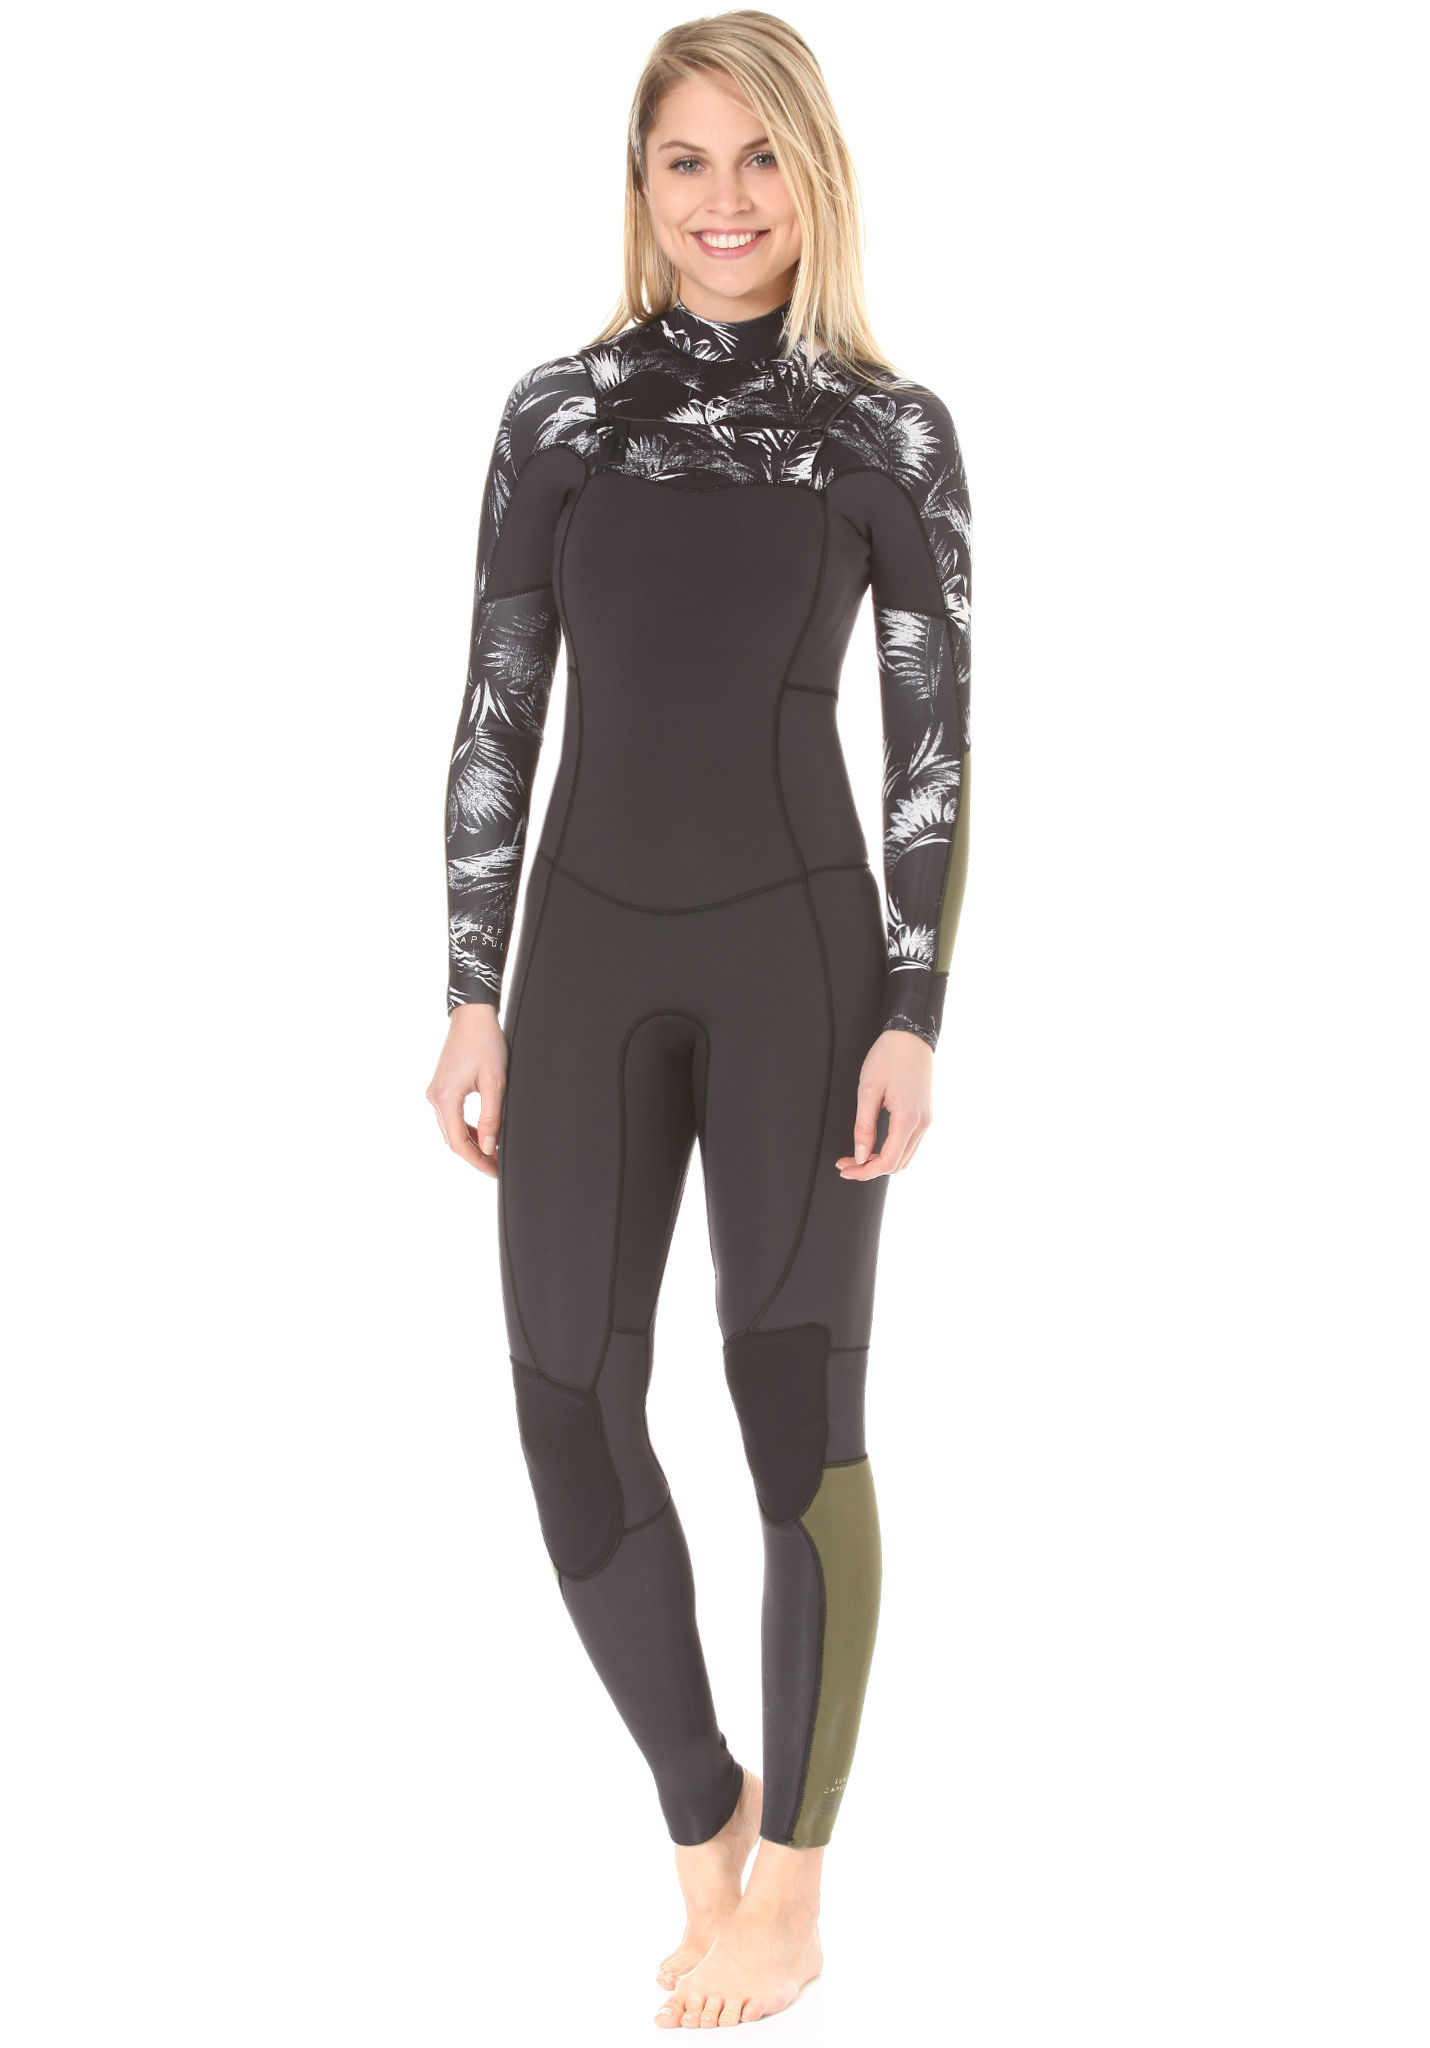 187270dd0e BILLABONG Salty Dayz 3 2mm Chest Zip - Wetsuit for Women - Black - Planet  Sports